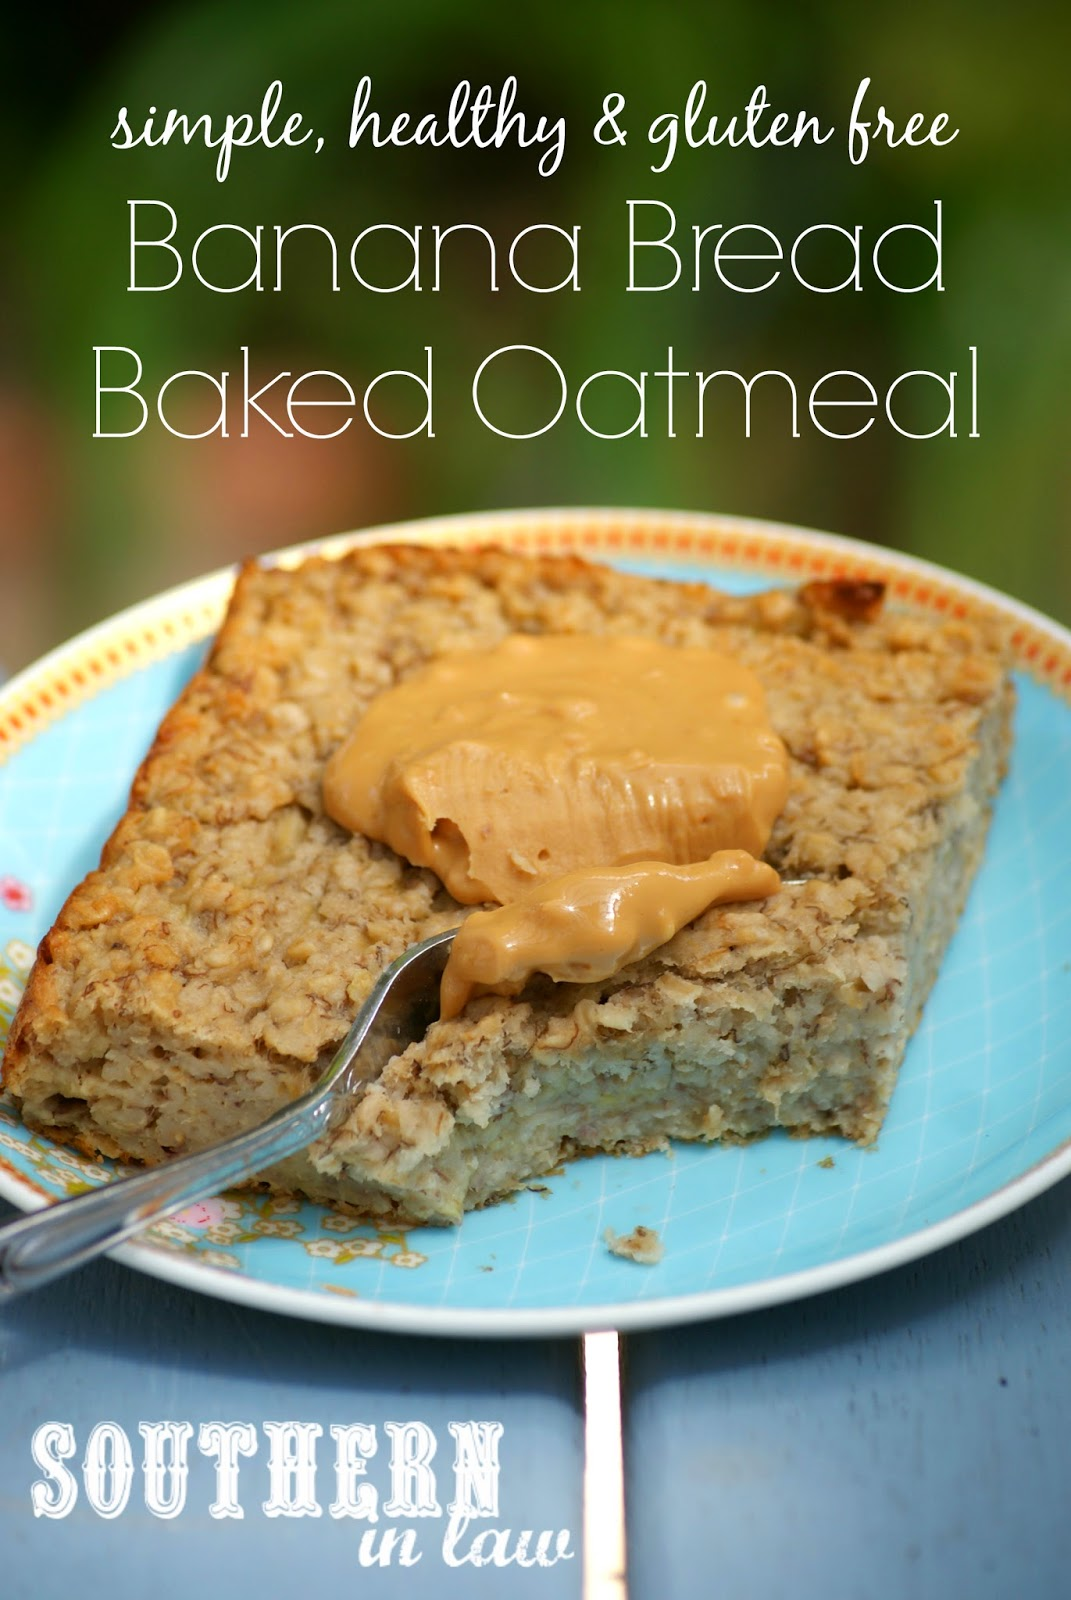 Southern In Law: Recipe: Banana Bread Baked Oatmeal